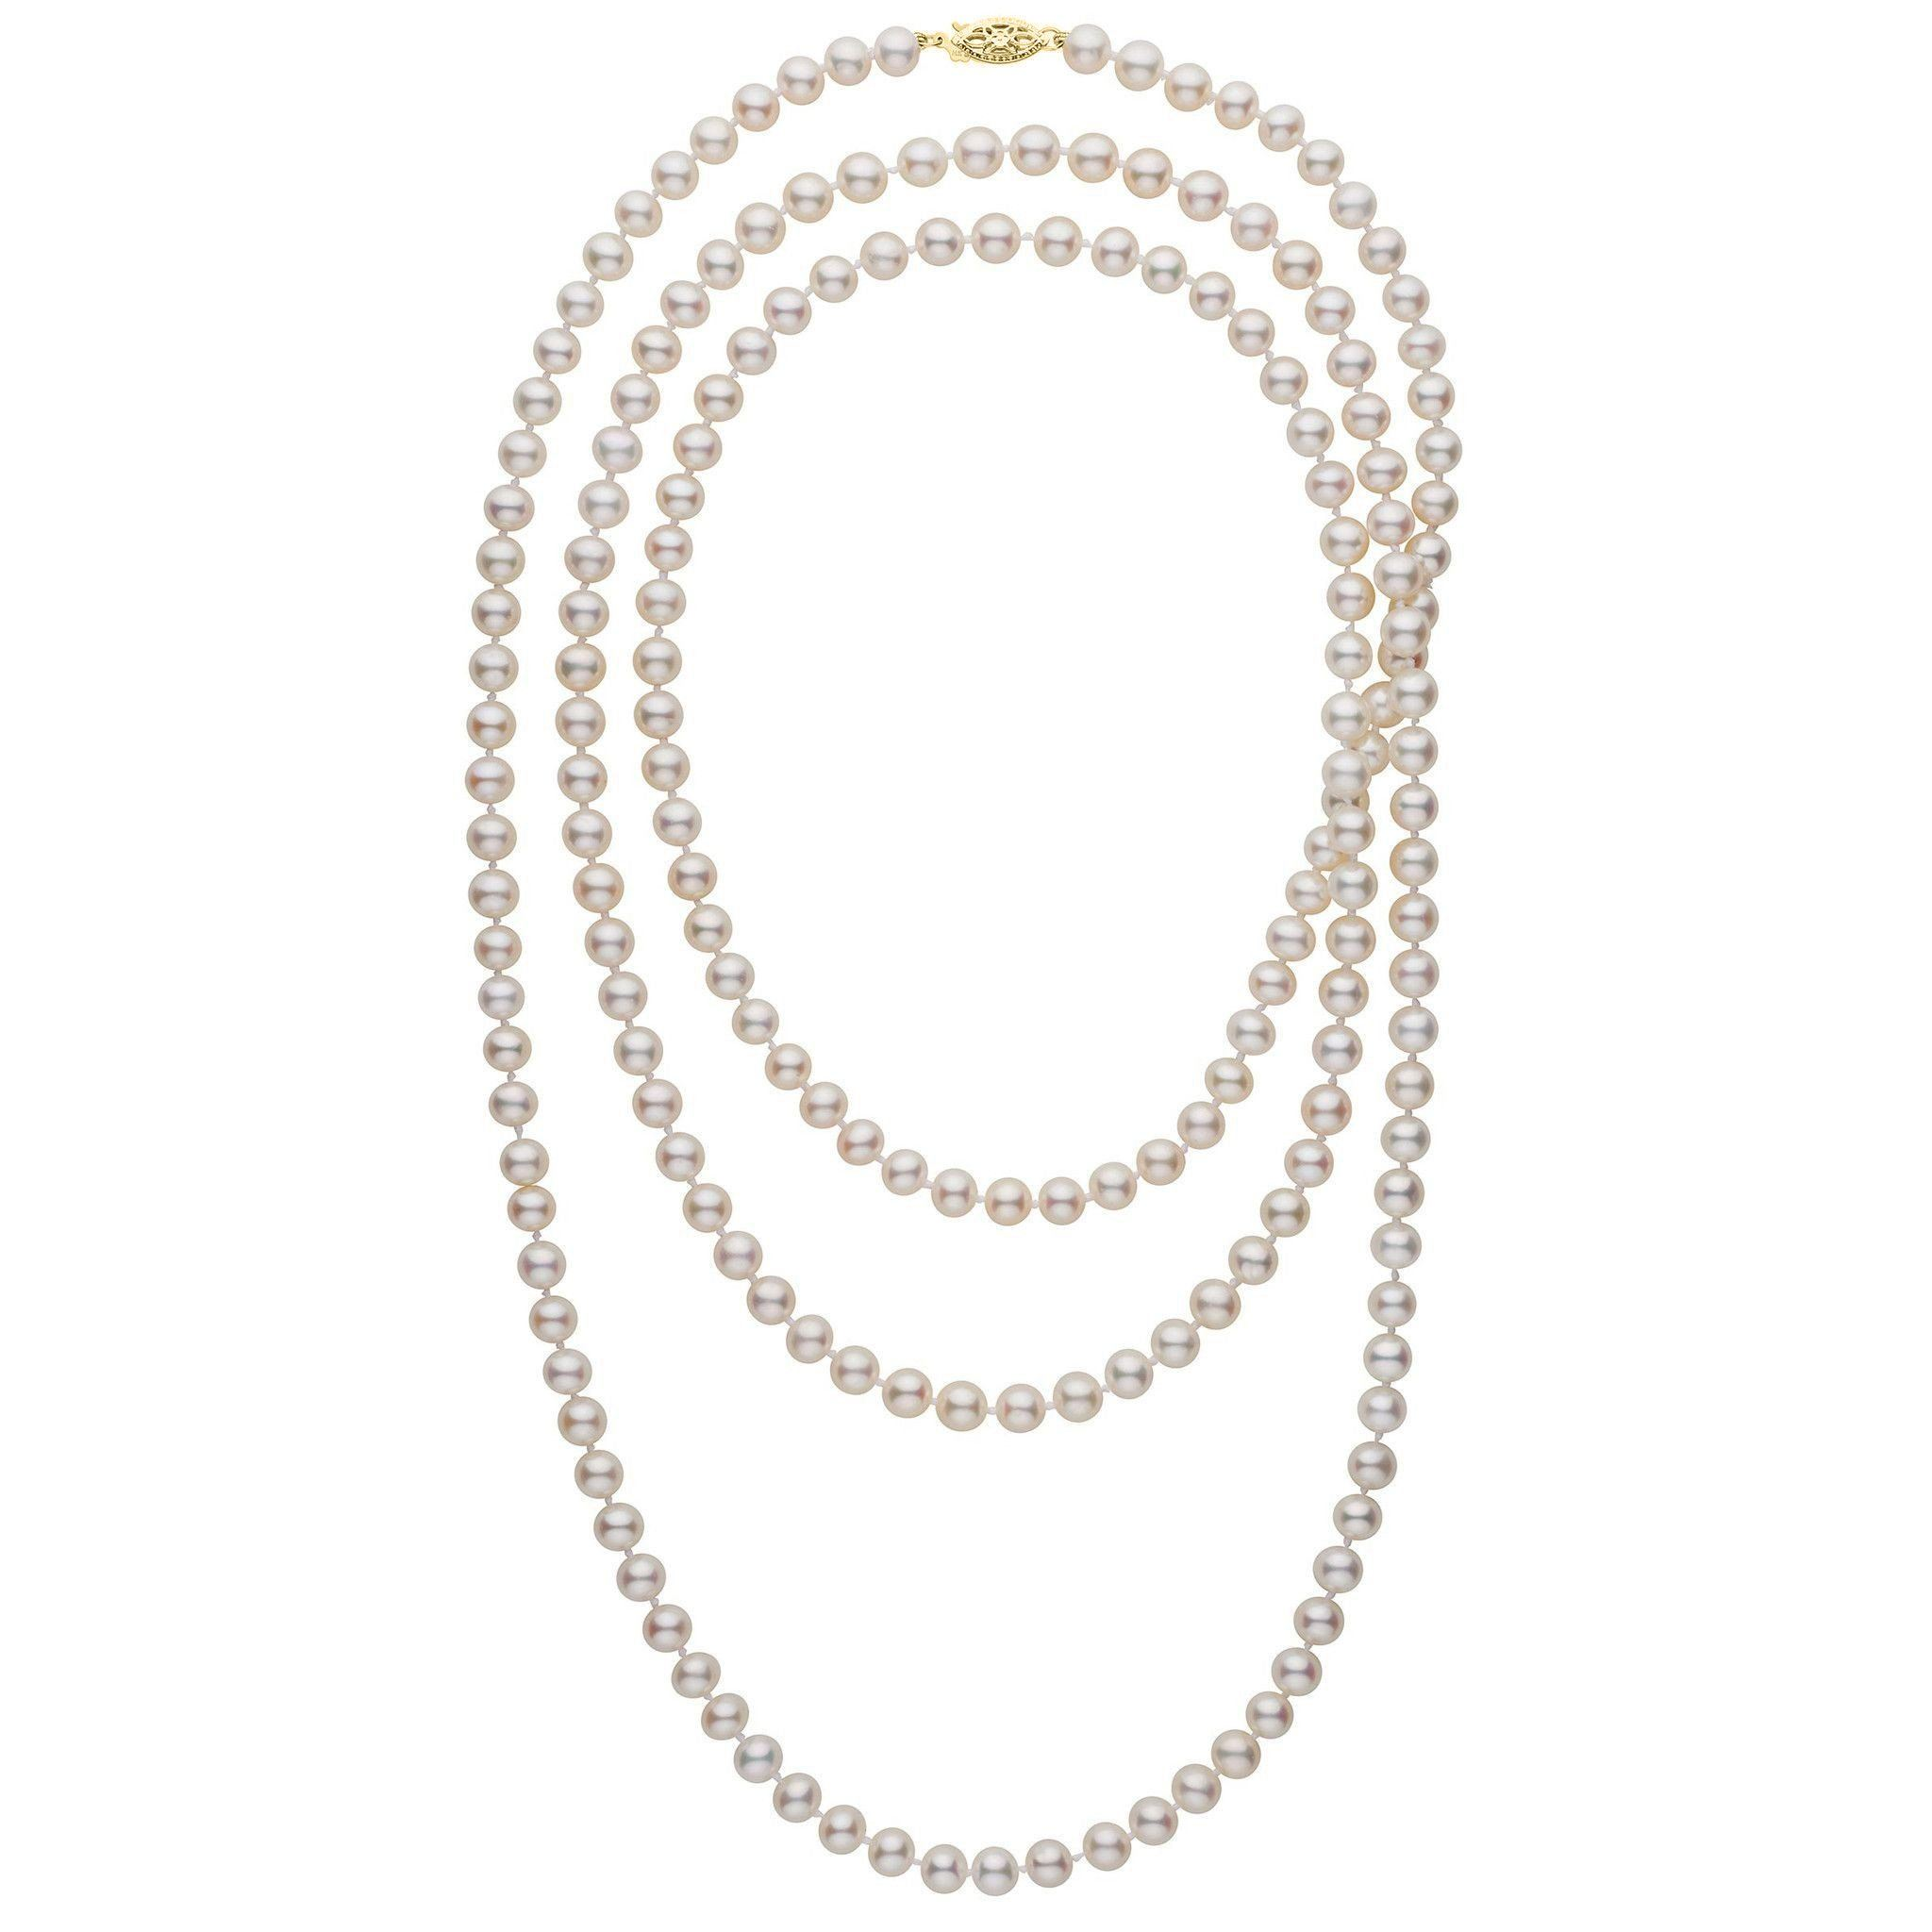 52-inch 6.5-7.0 mm AA+ White Freshwater Pearl Necklace